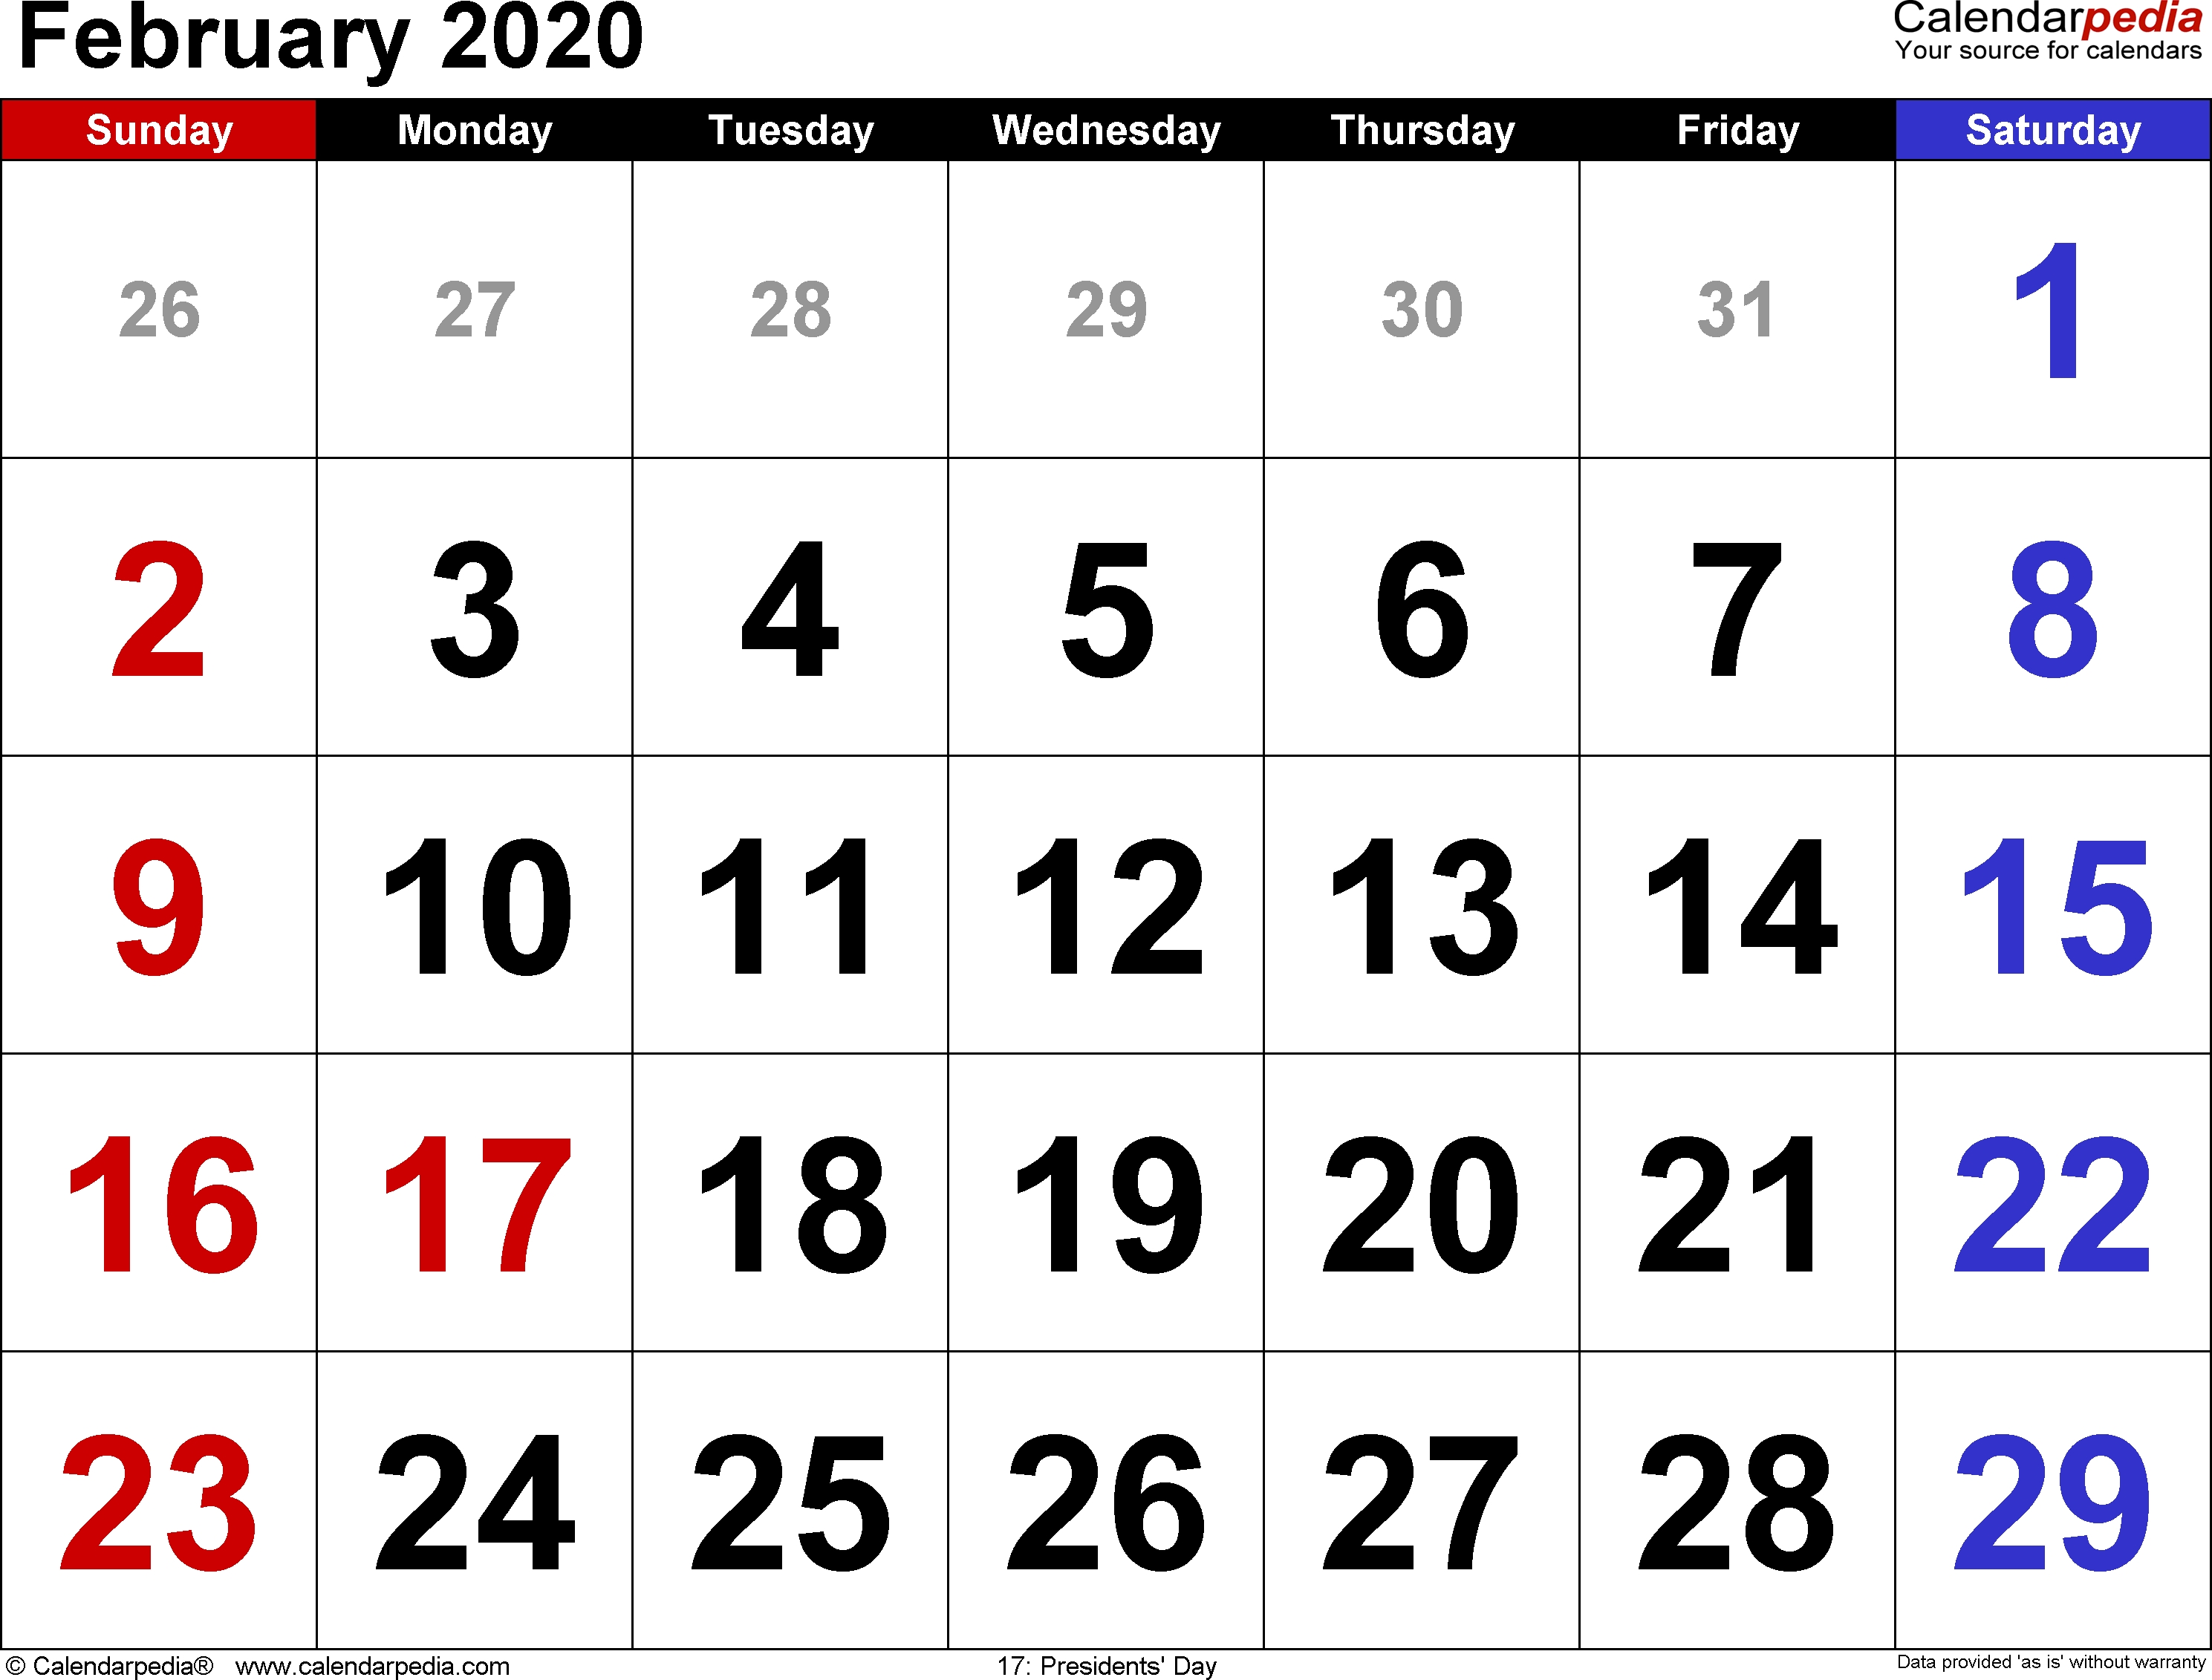 February 2020 Calendars For Word, Excel & Pdf  Date Code Calendar 2020